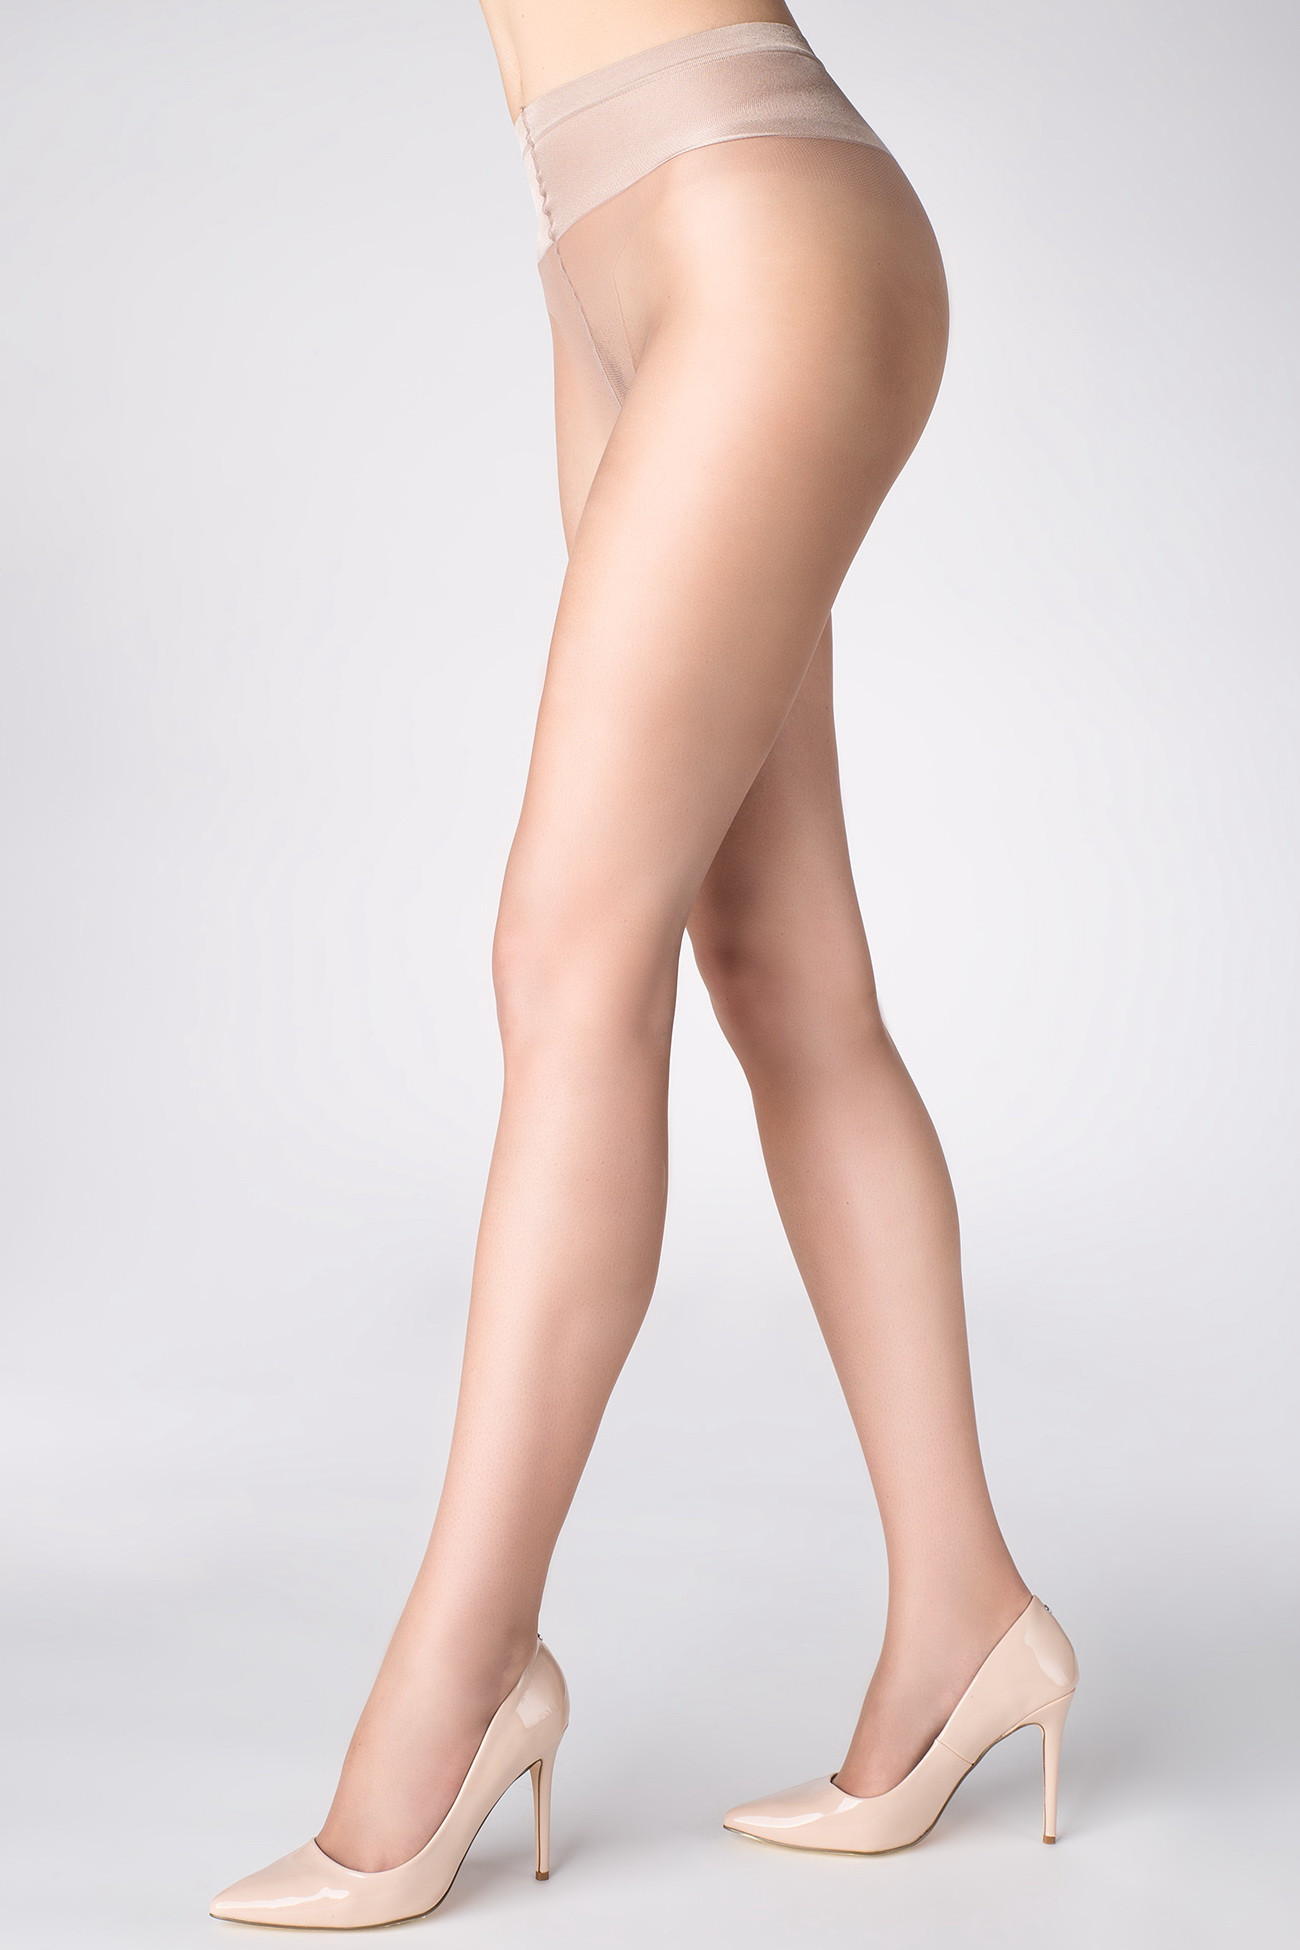 group-naked-pantyhose-for-cellulite-mila-having